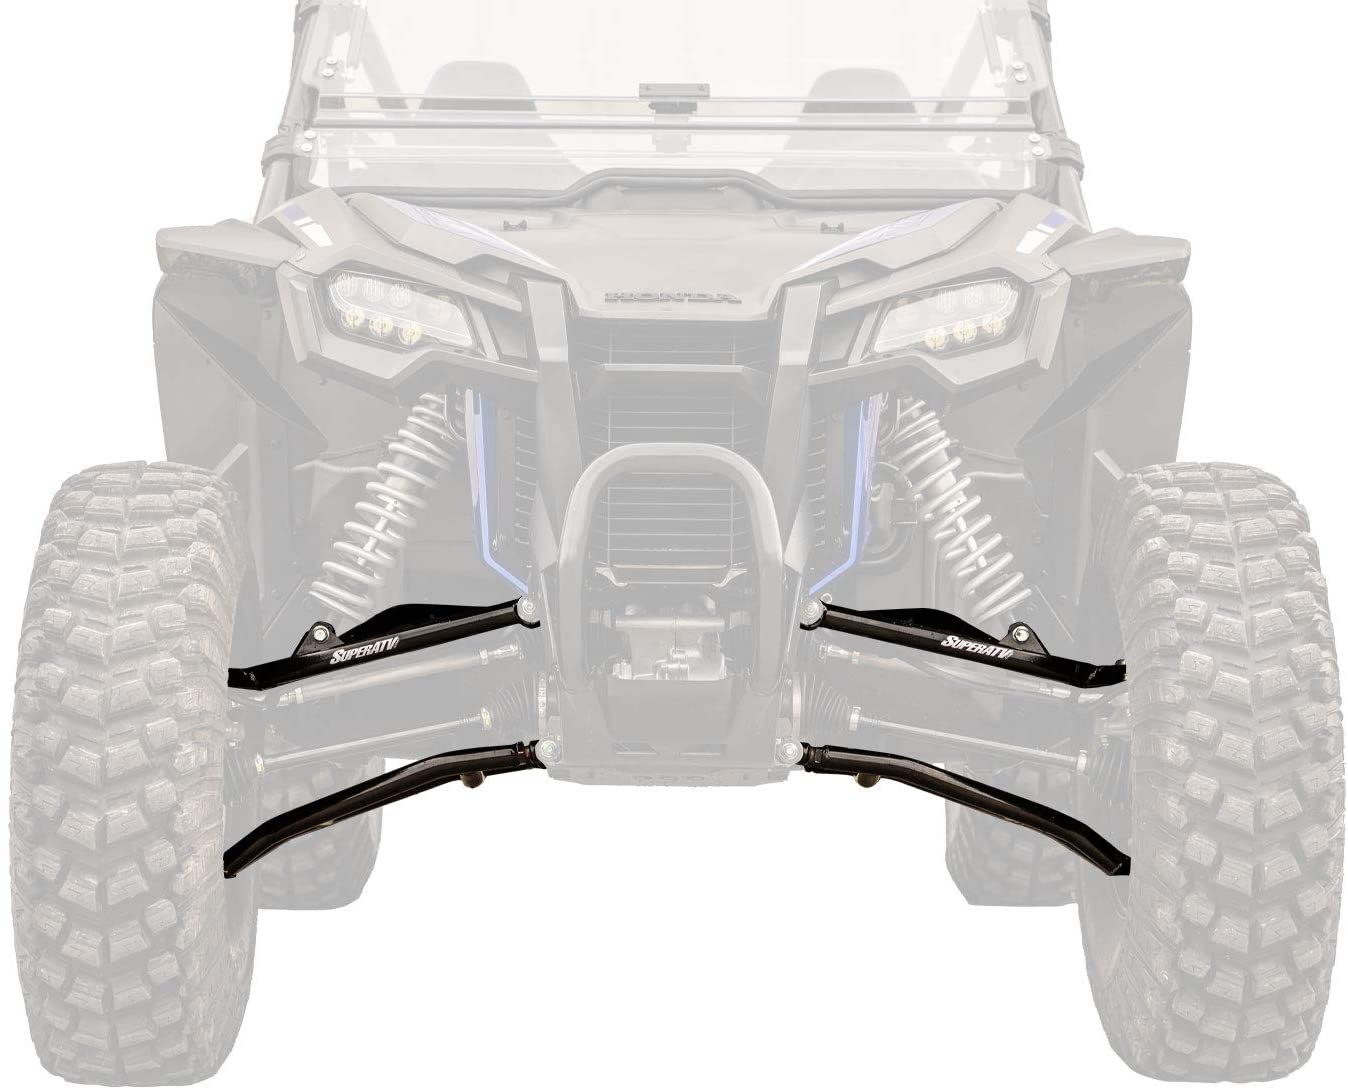 SuperATV High Clearance 1.5 Forward Offset A Arms for Honda Talon 1000X (2019+) - Black - Fit up to a 34 Tire!